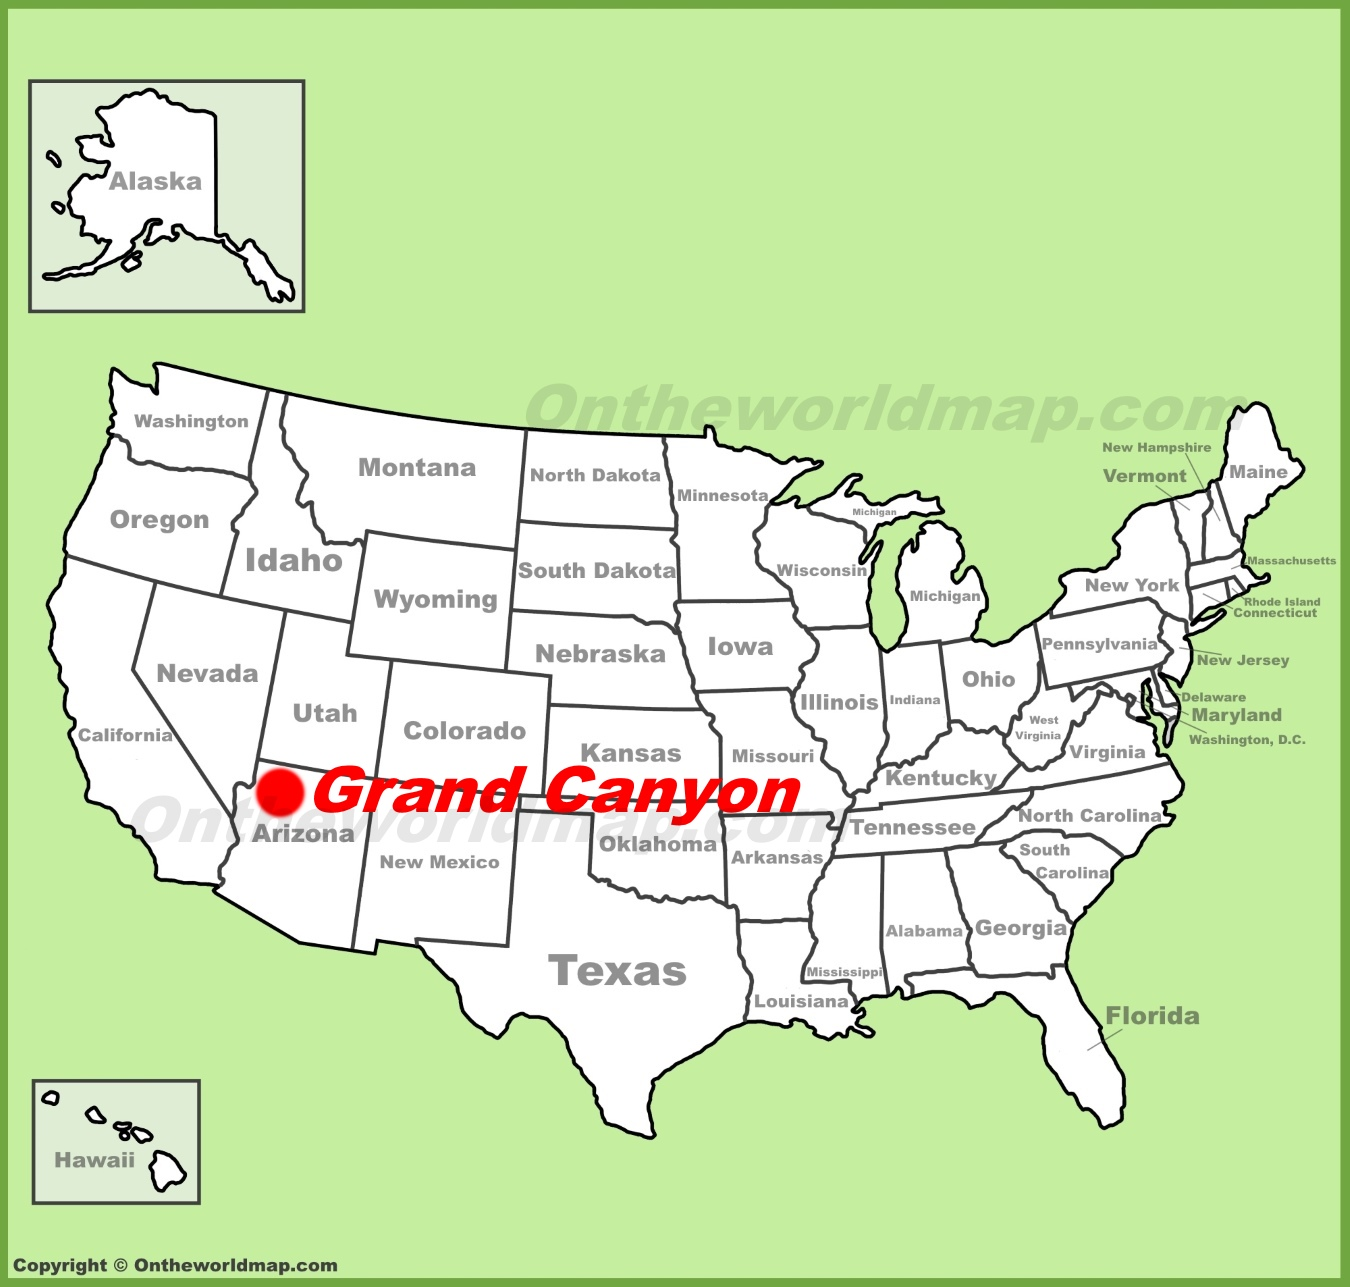 Grand Canyon location on the US Map